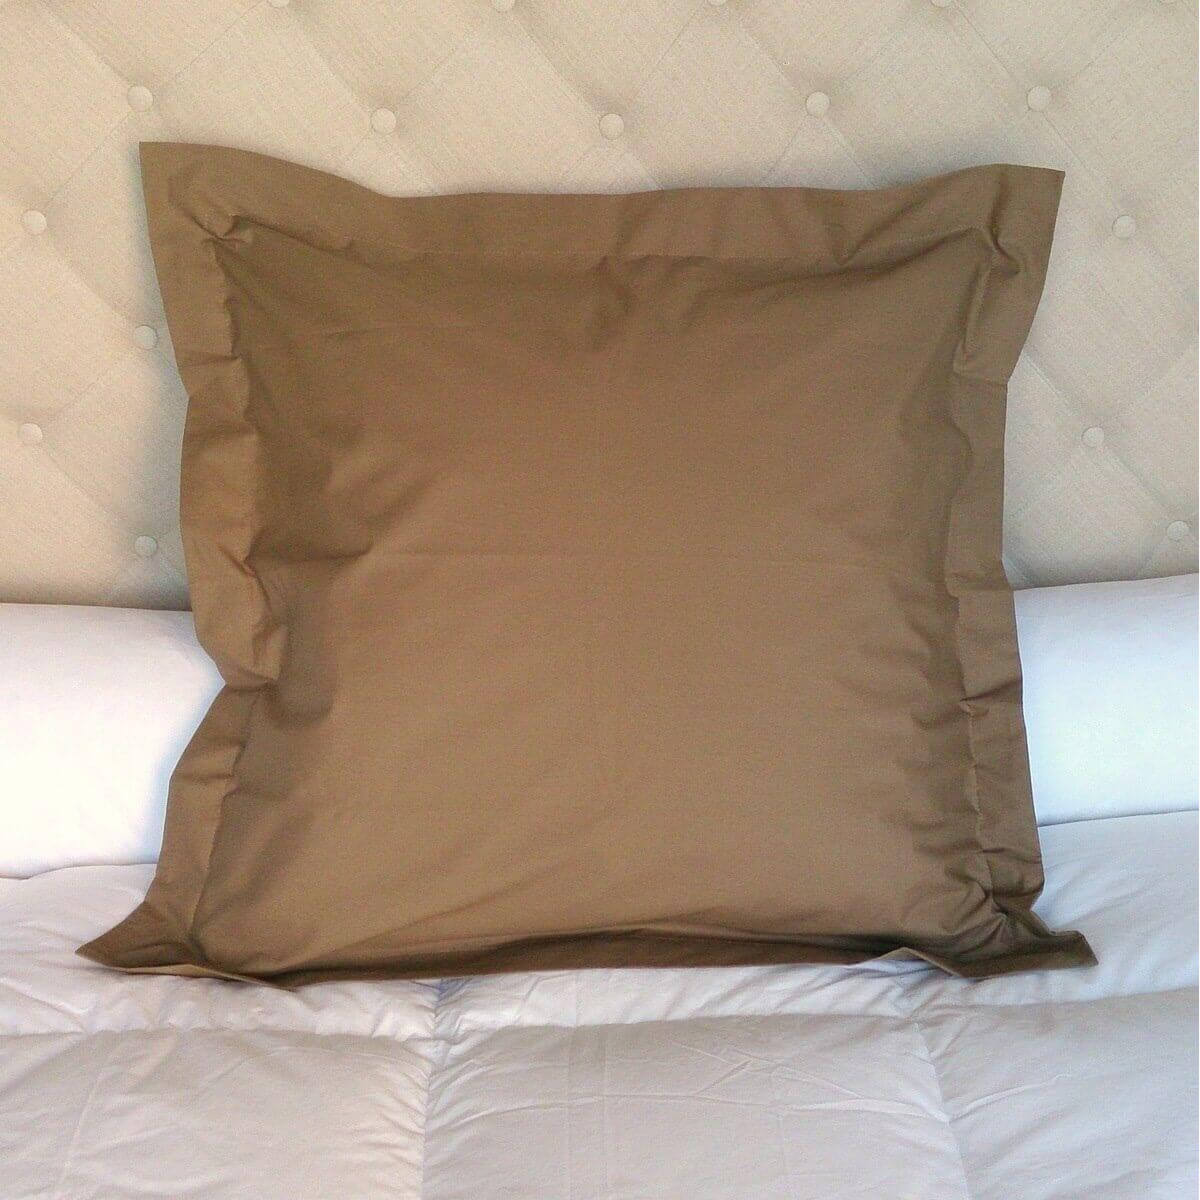 Taie d´oreiller couleur, Coloris unis: taupe, Taille protections taies: 65x65 cm